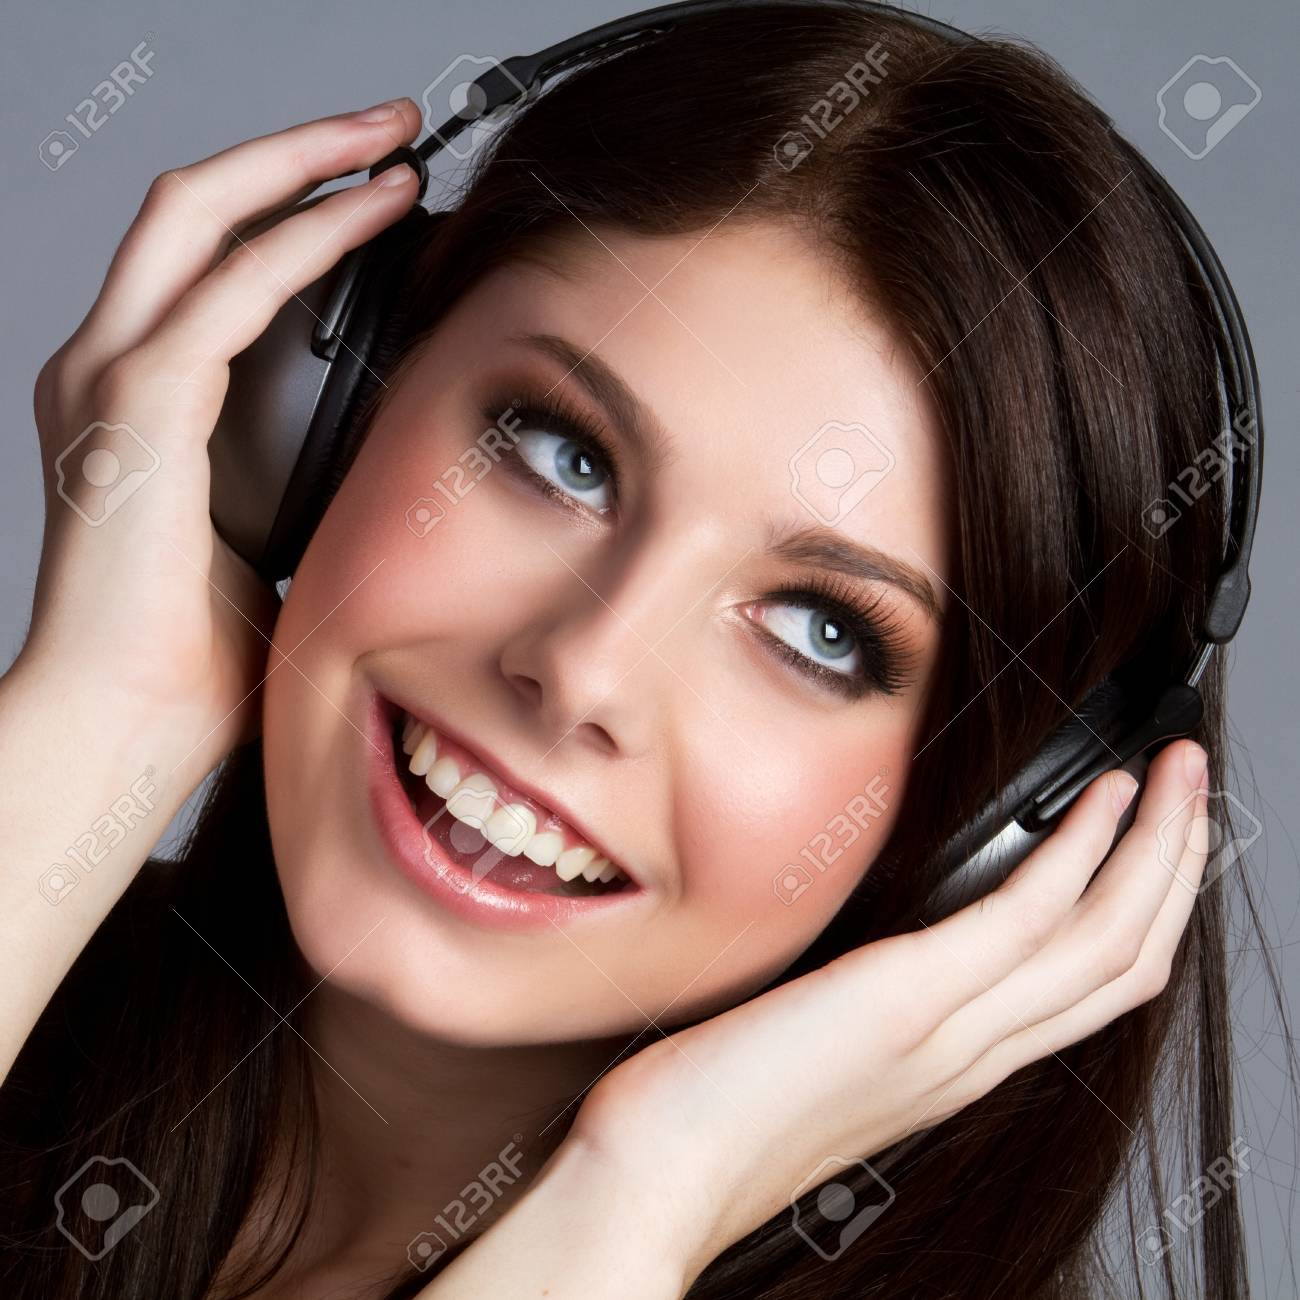 Girl listening to music through a headphone. Stock Photo - 9084252